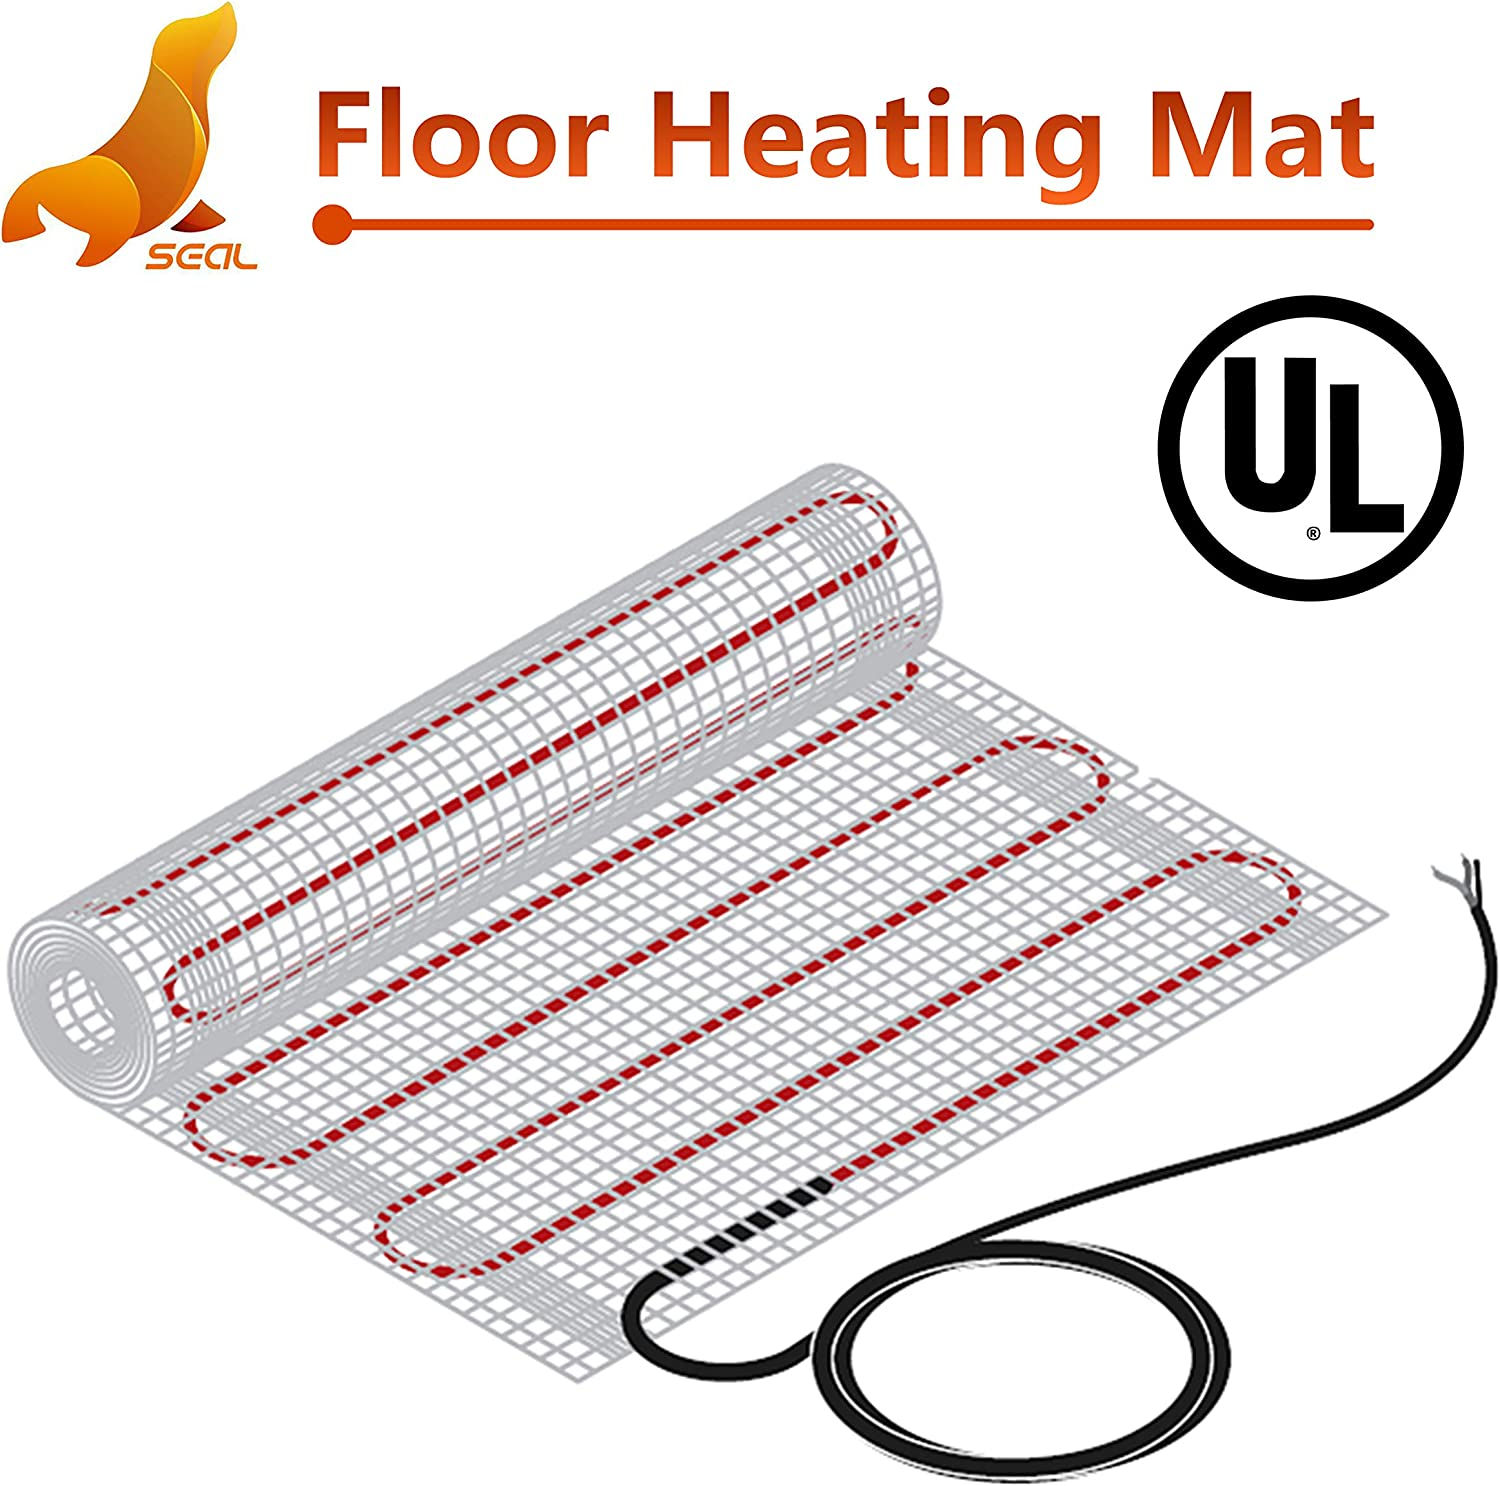 SEAL 100 sqft 120V Radiant Floor Heating Mat for Ceramic, Tile, Mortar, Easy to Install Self-adhesive Floor Heating System Kit